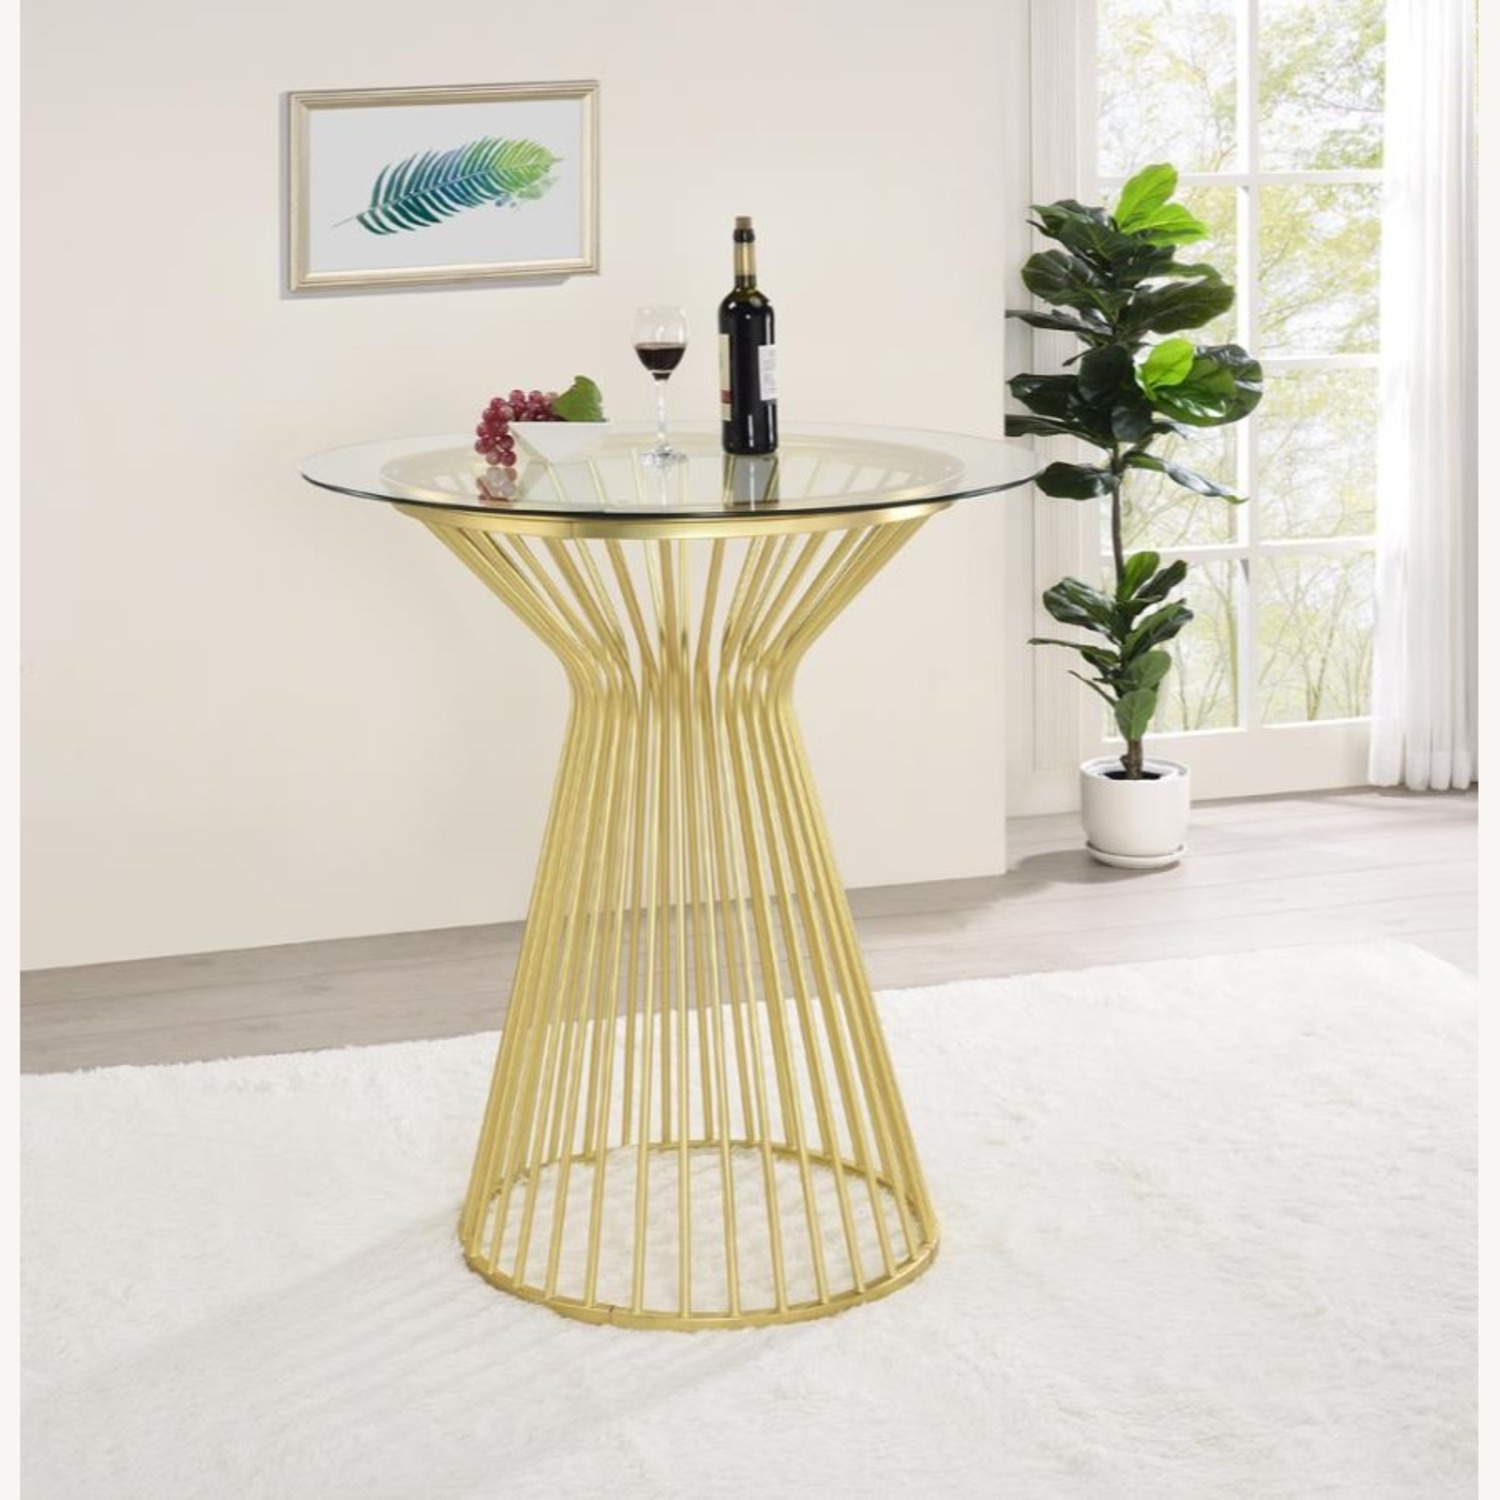 Bar Table W Round Wire Frame In Matte Brass - image-2